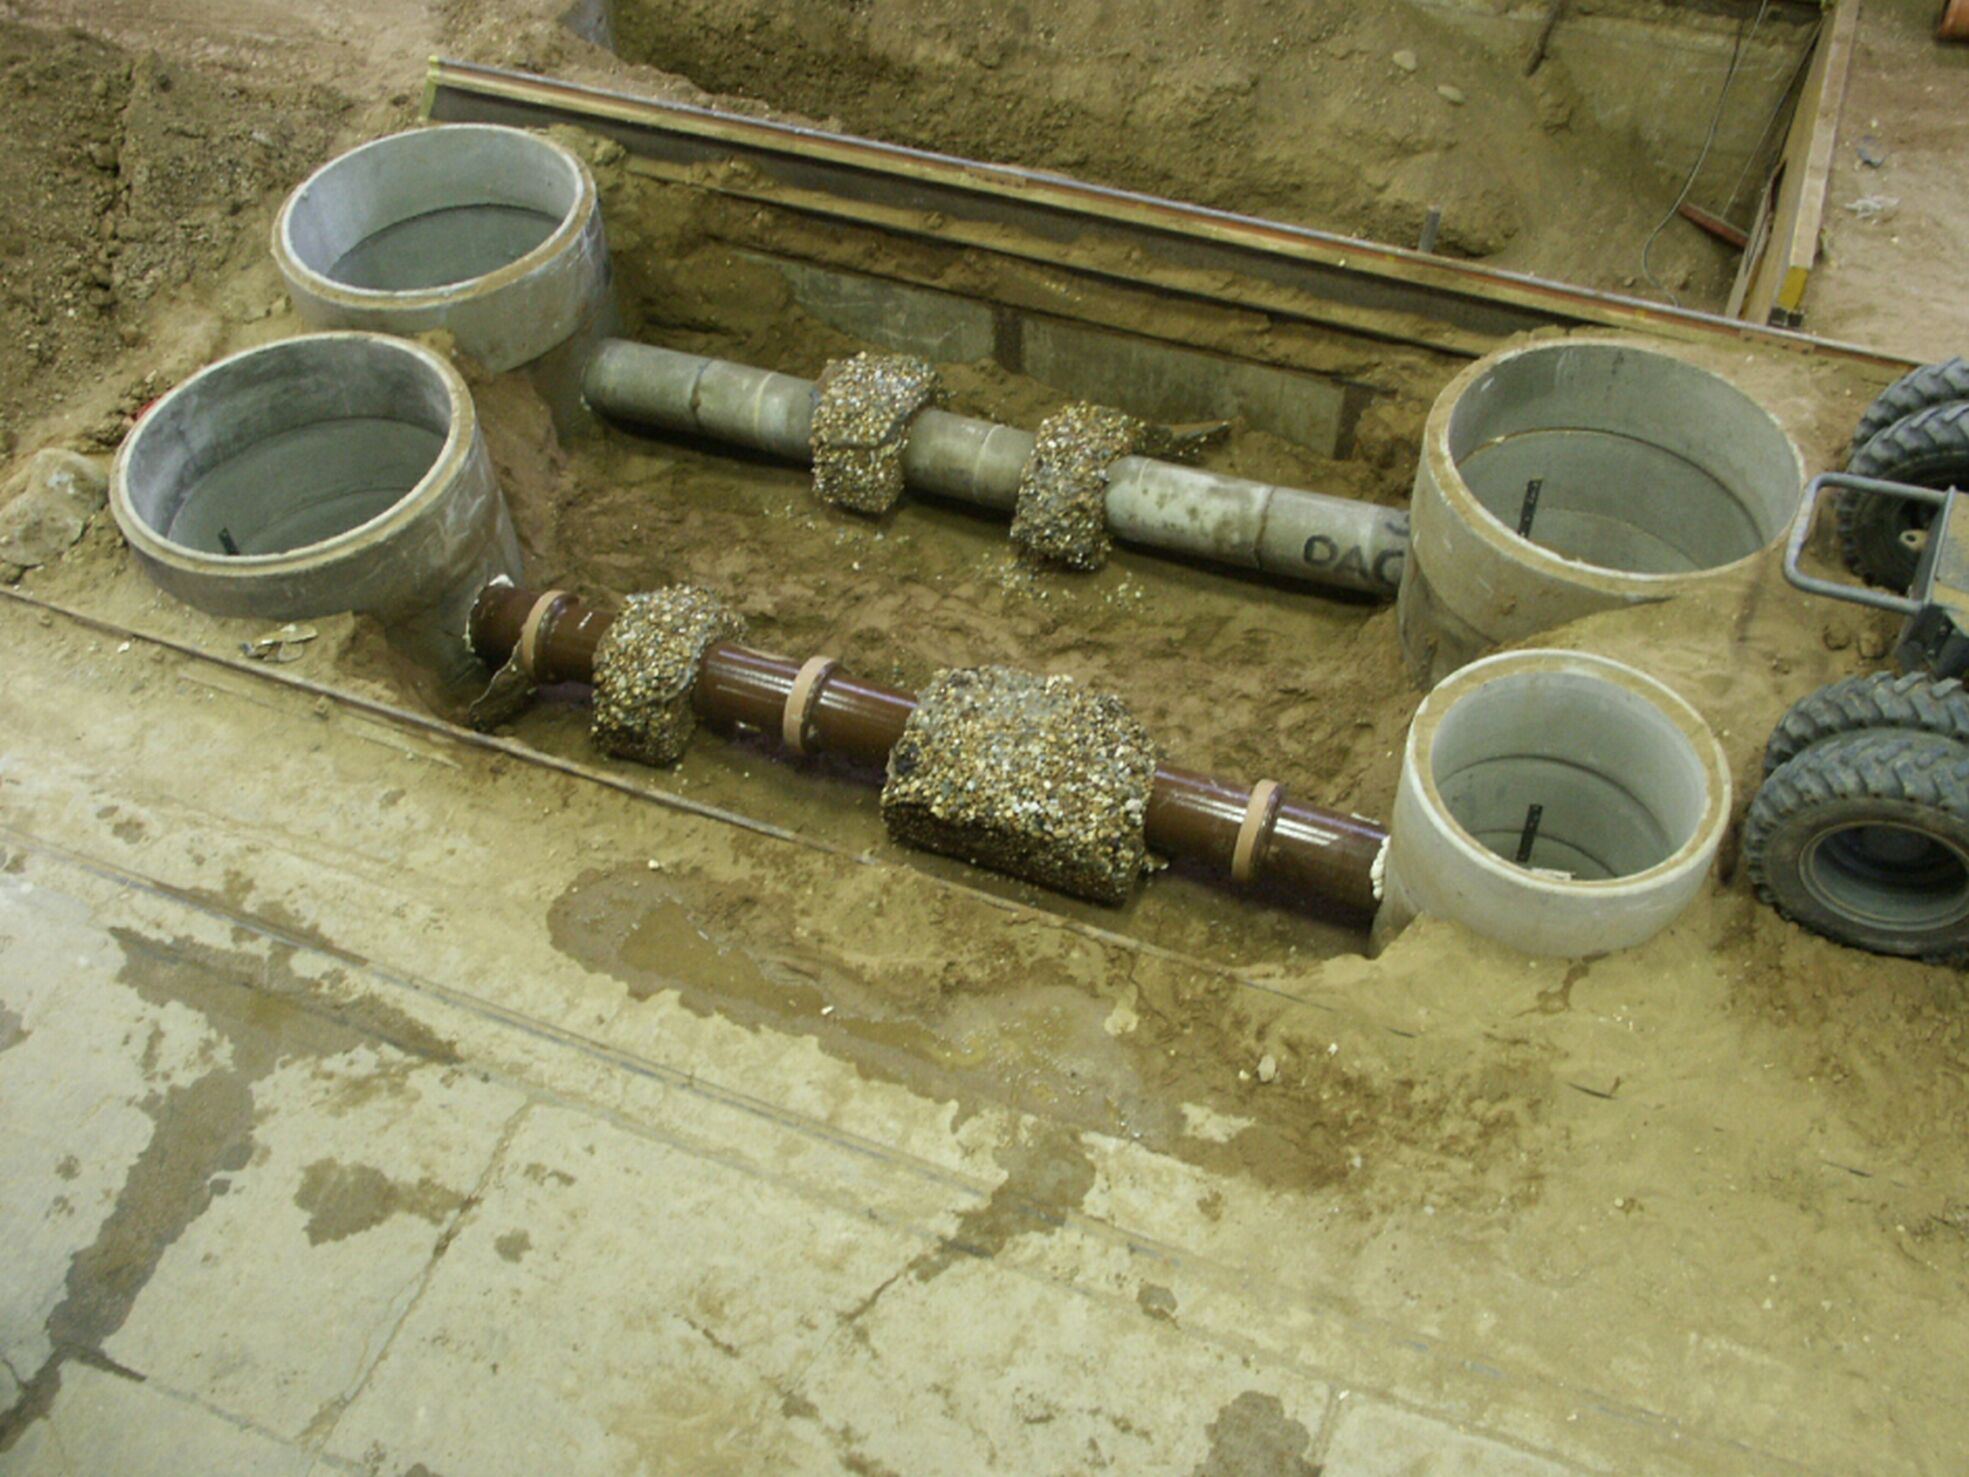 New Injection Process Seals Leaking Sewer Pipe Joints